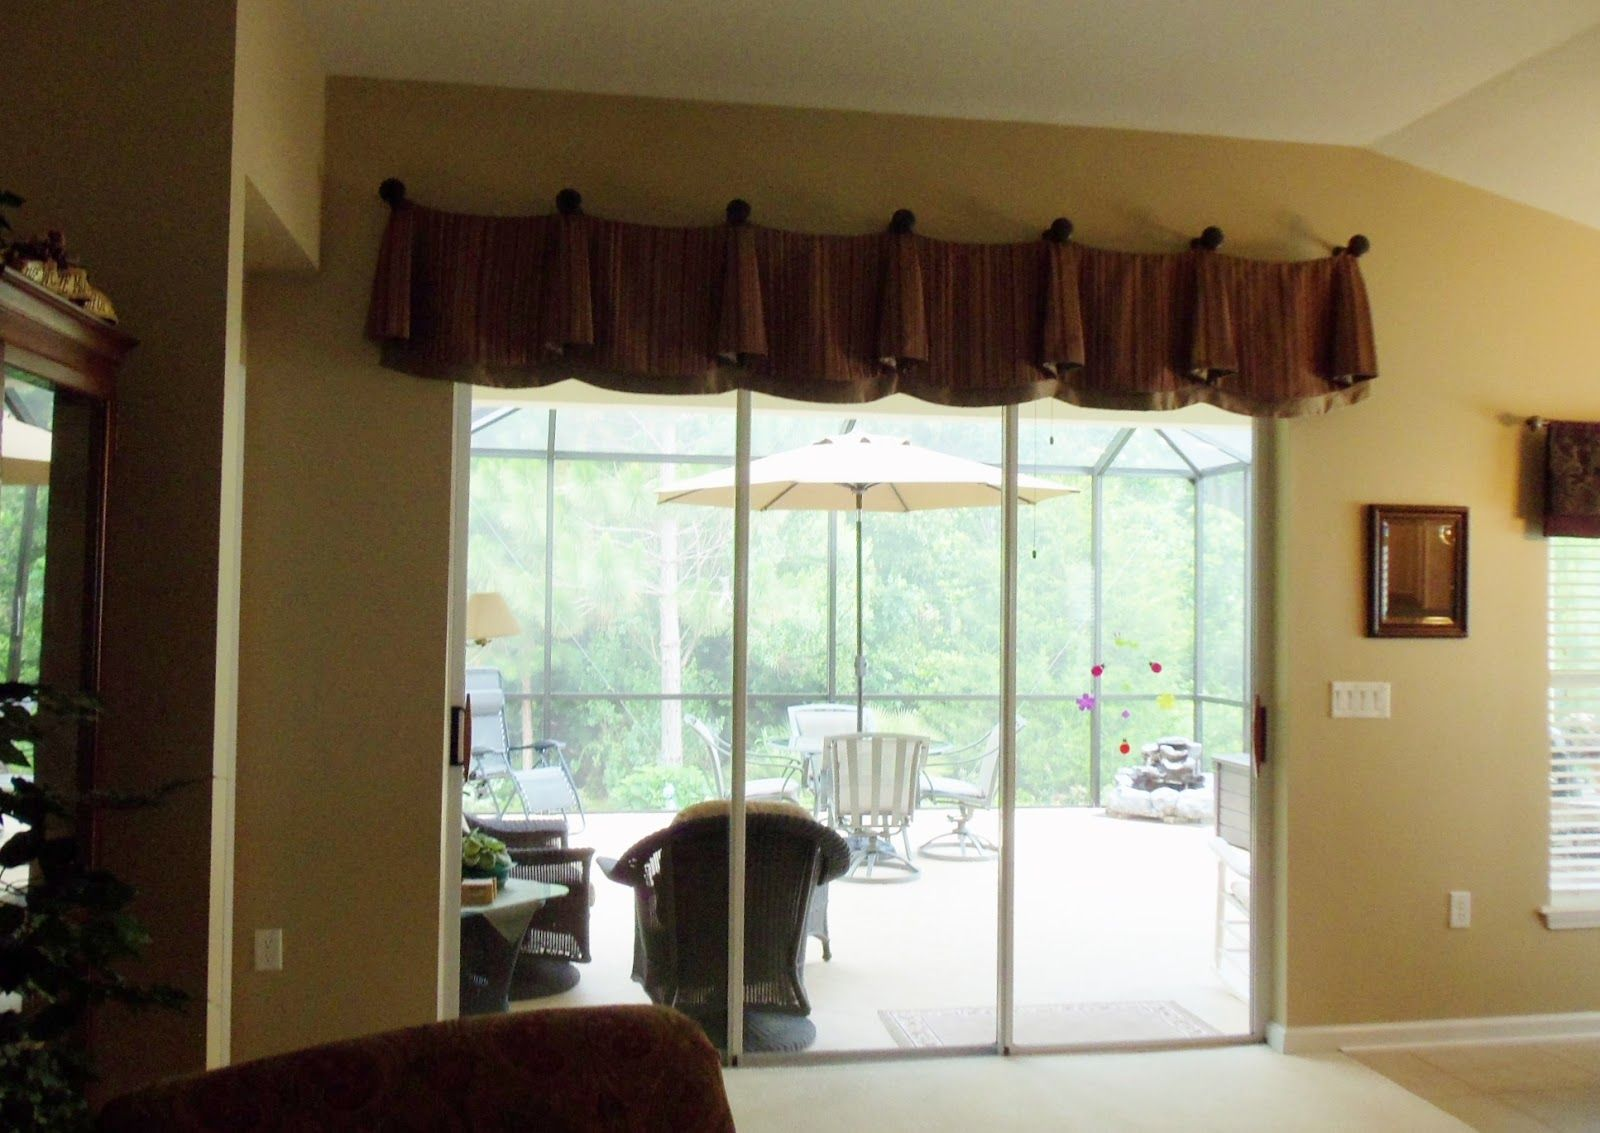 Styles of Window Treatments for Sliding Doors